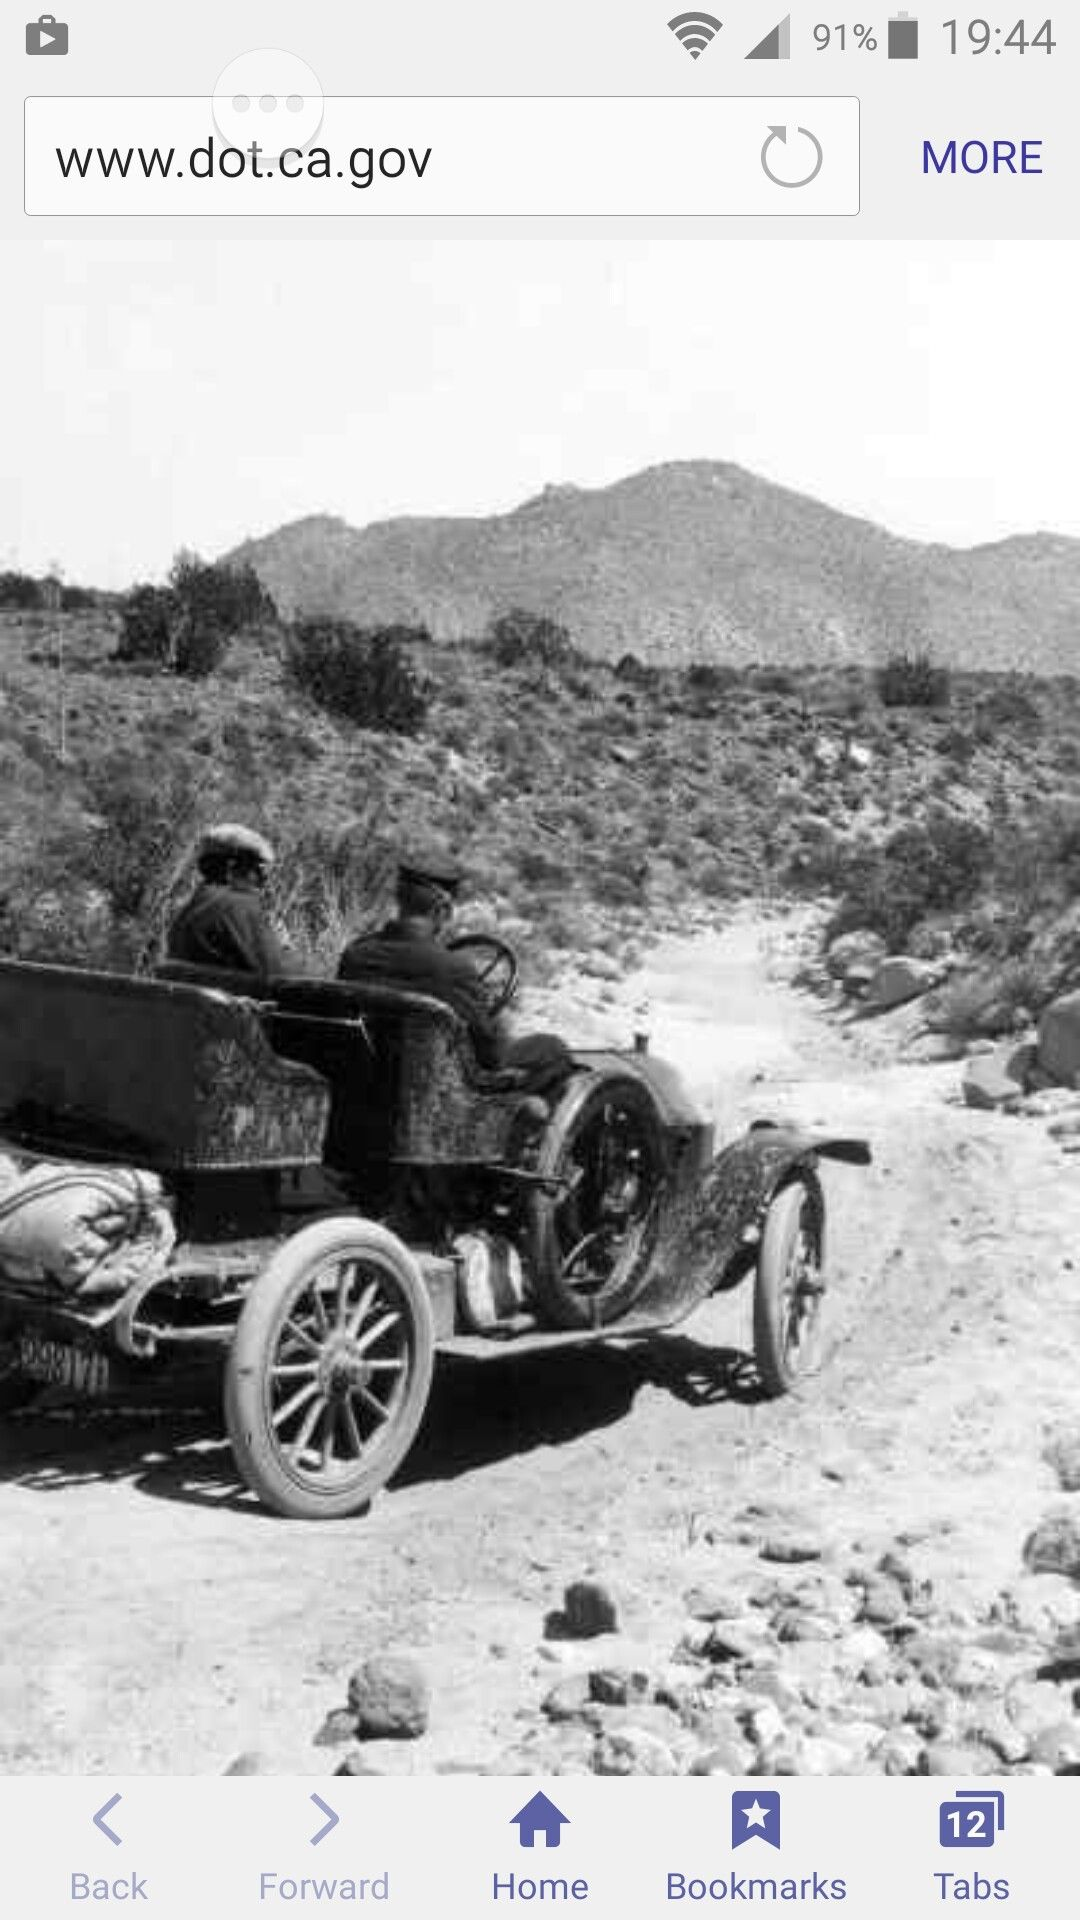 Caltrans photo of old car, Highway 80 Imperial County